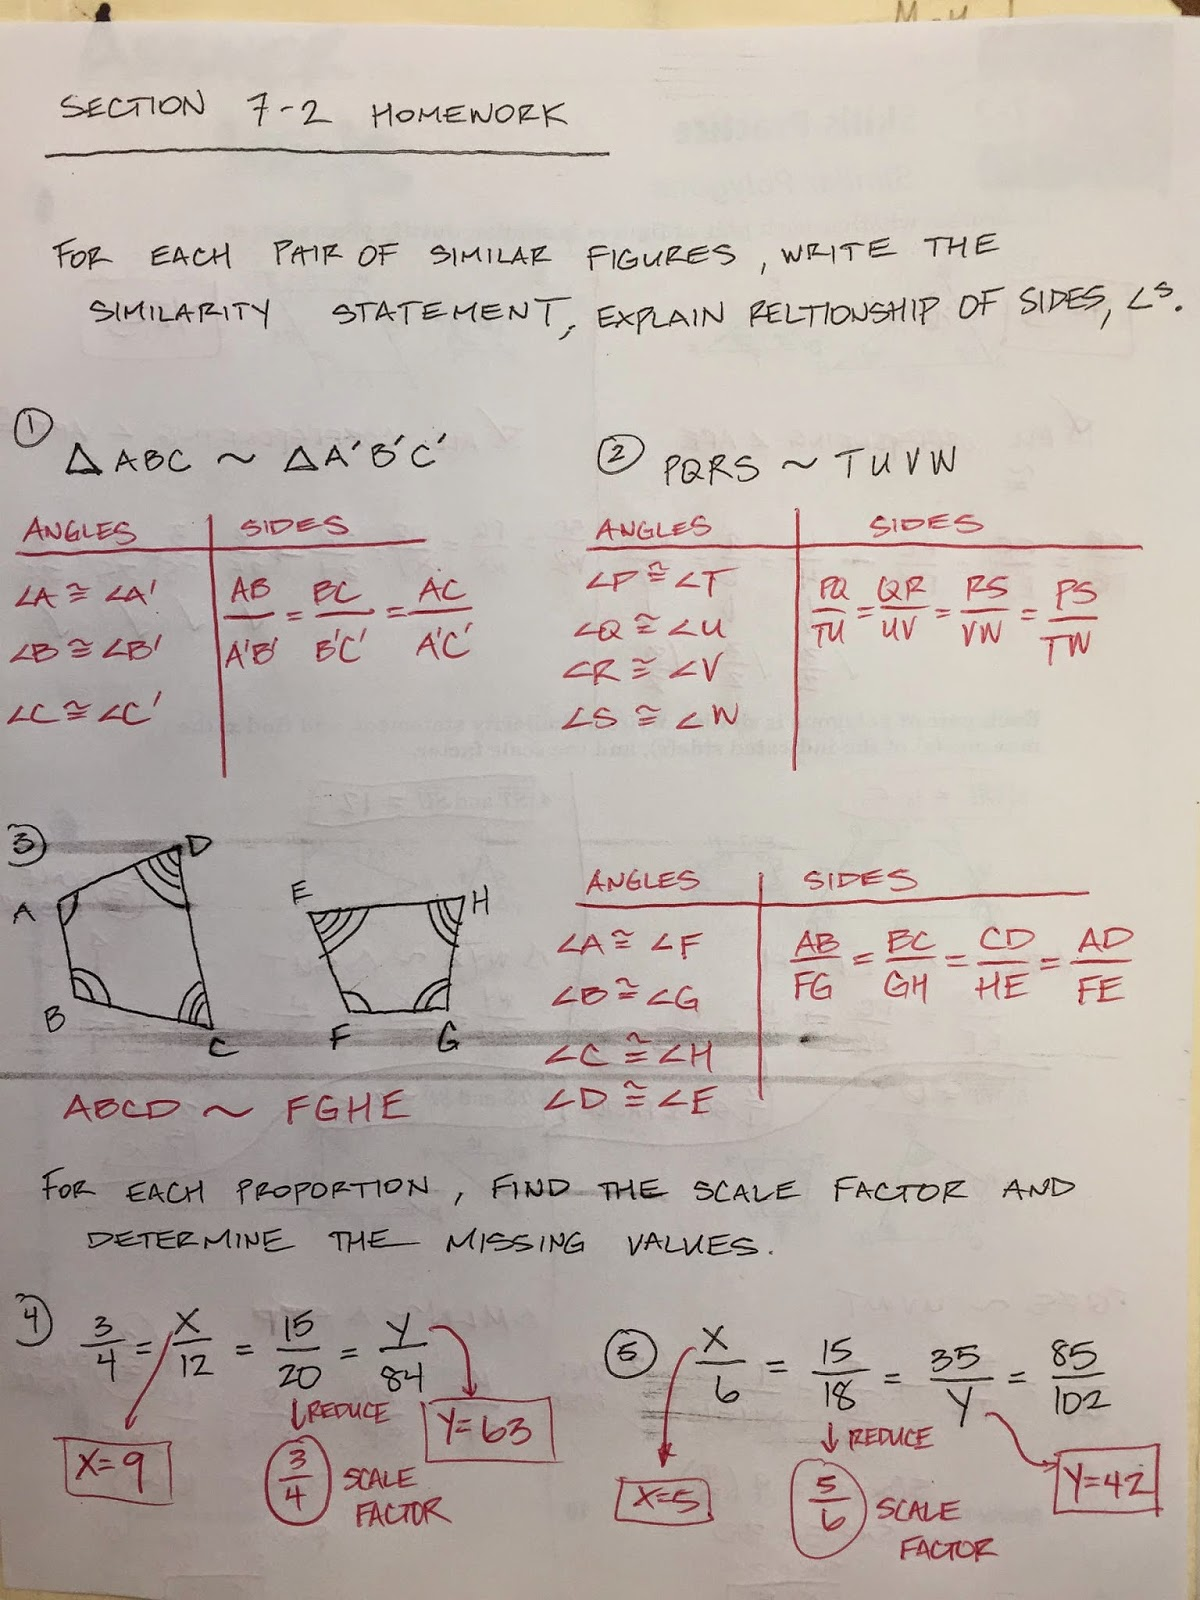 Honors Geometry - Vintage High School: Section 7-2 Similar Polygons